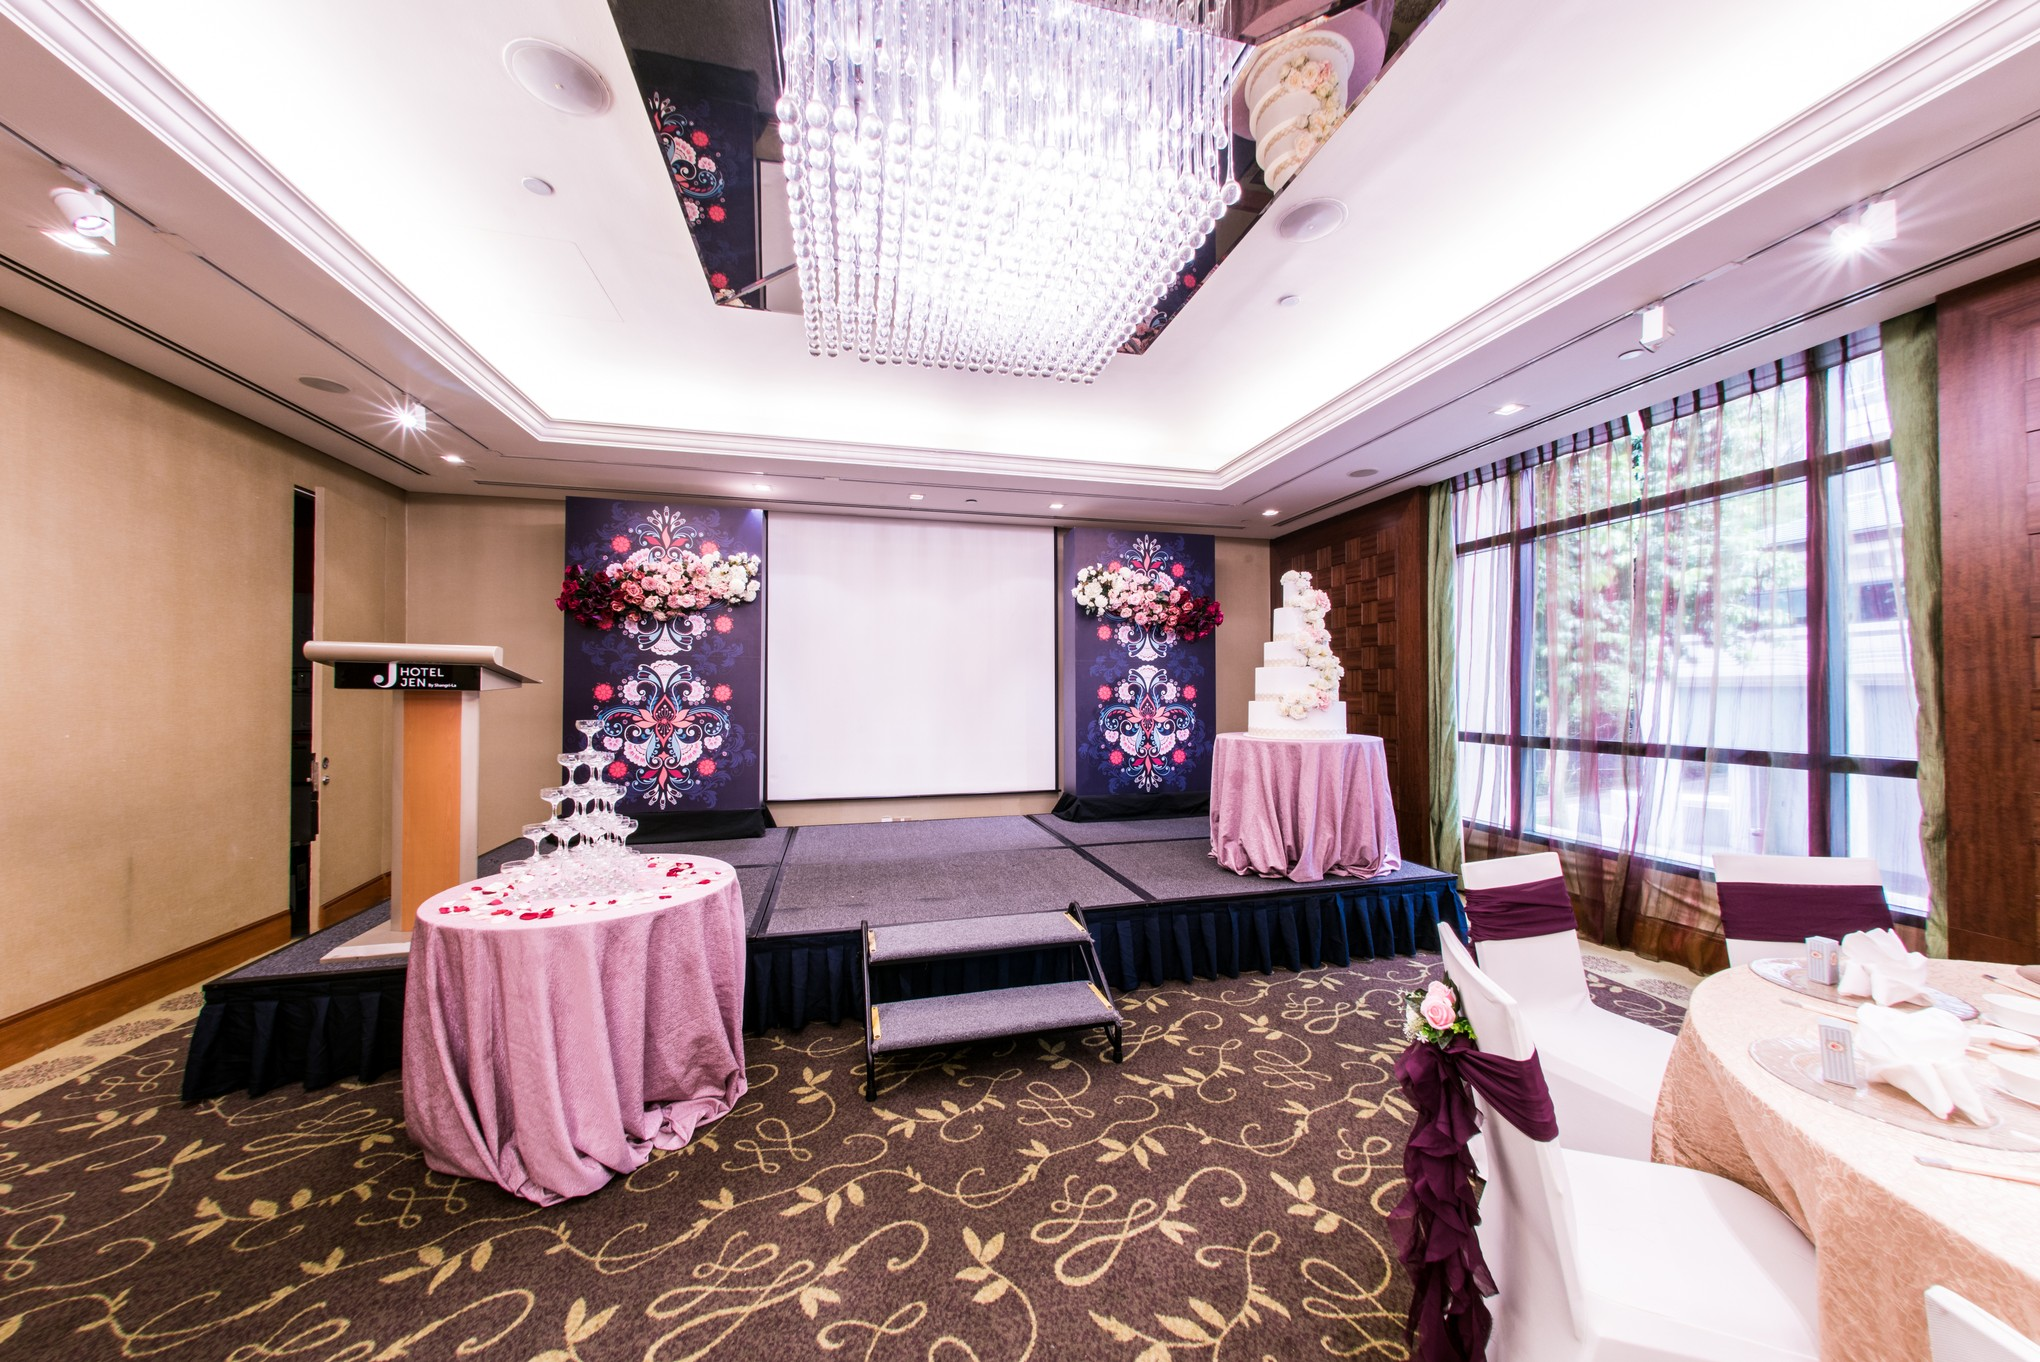 6 Reasons to Have Your Wedding at Hotel Jen Tanglin